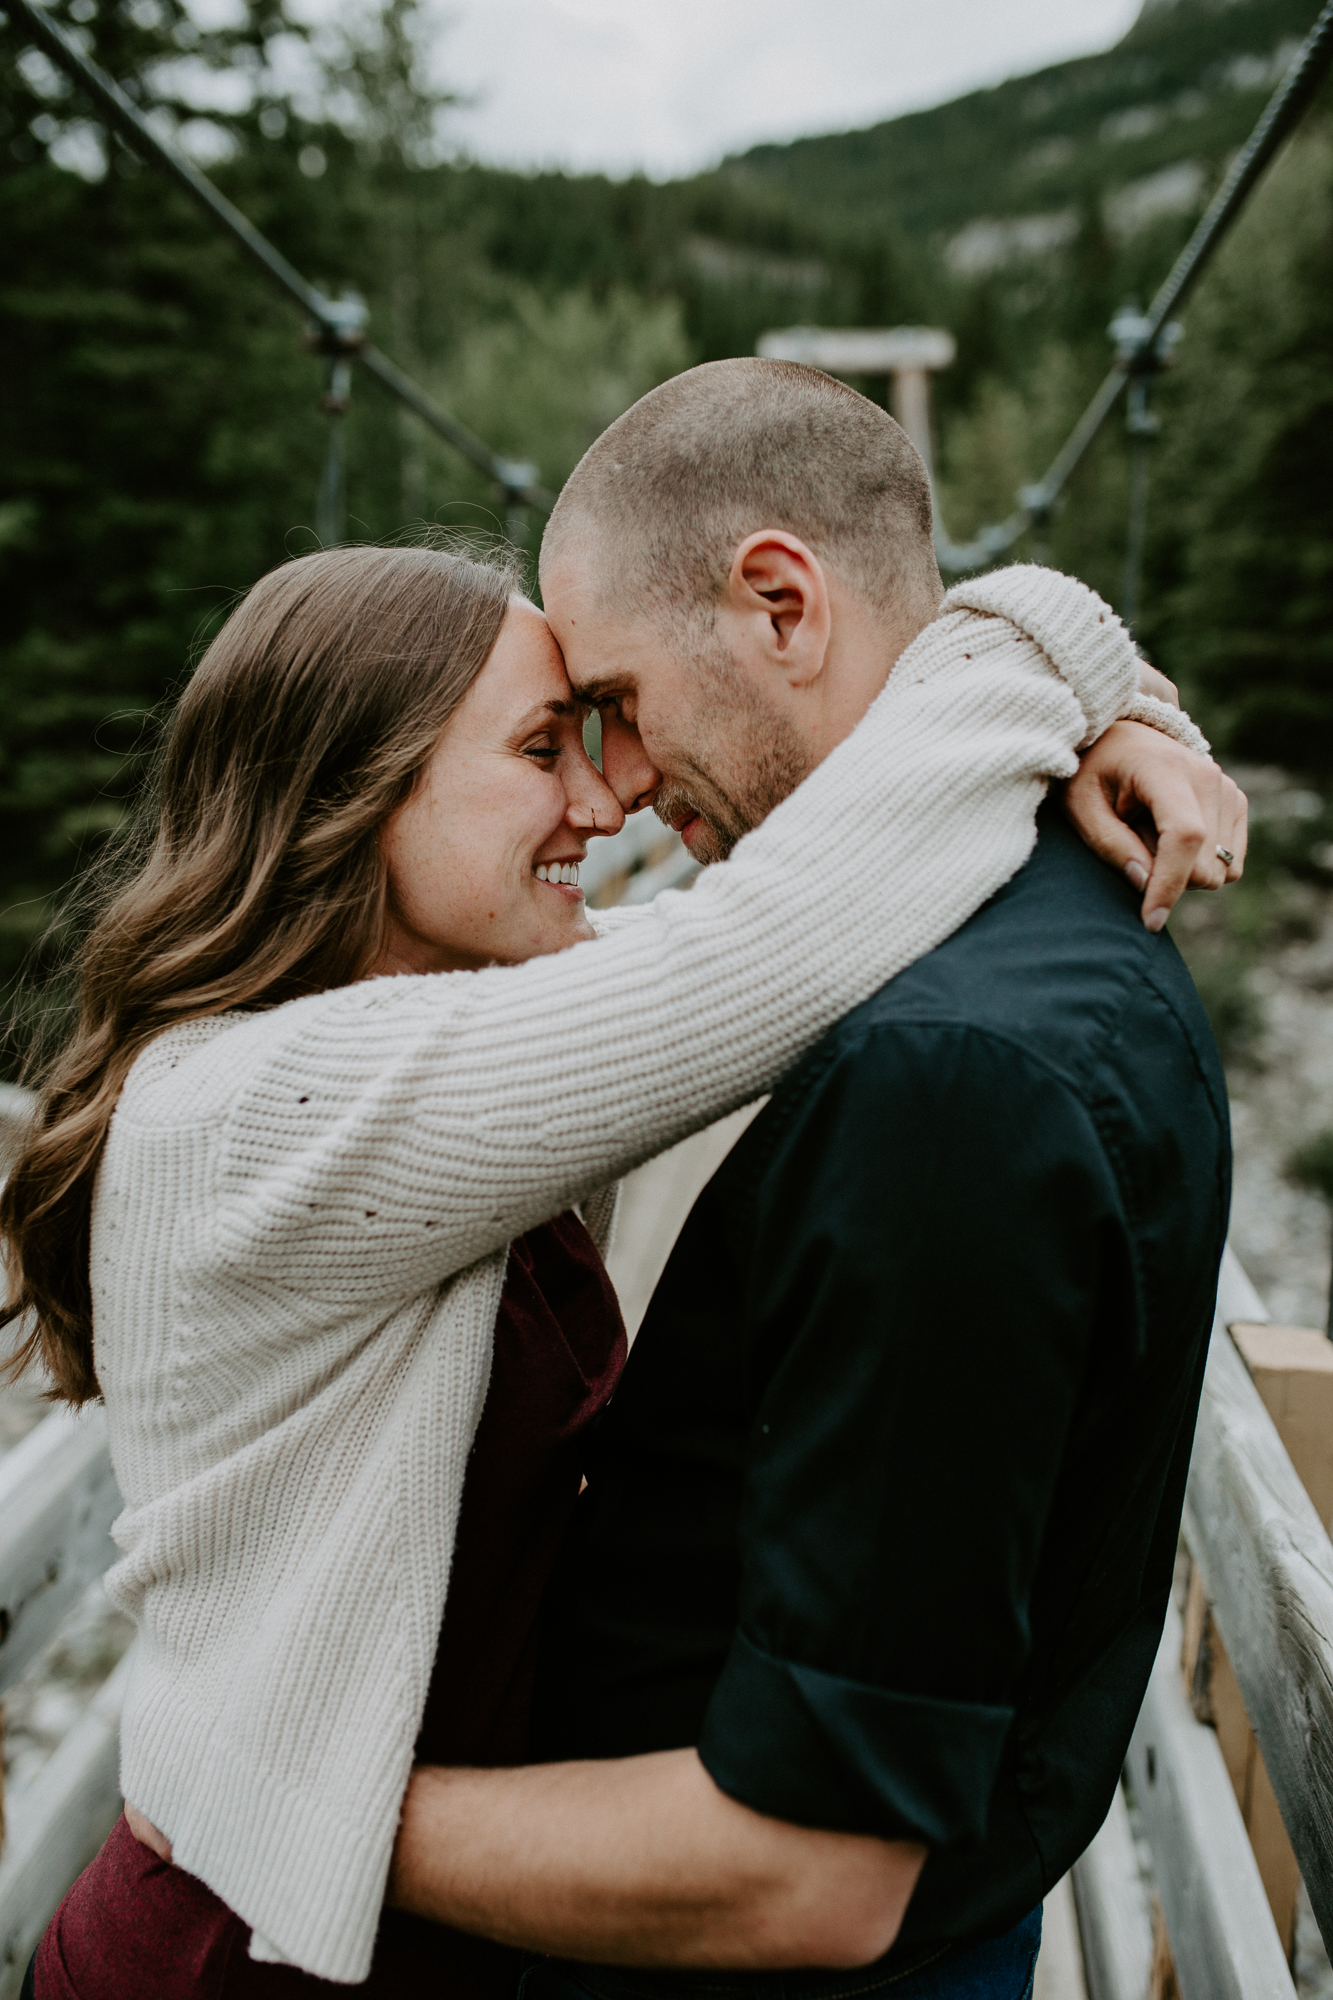 Kananaskis-engagement-session-photographer-jm-1.jpg